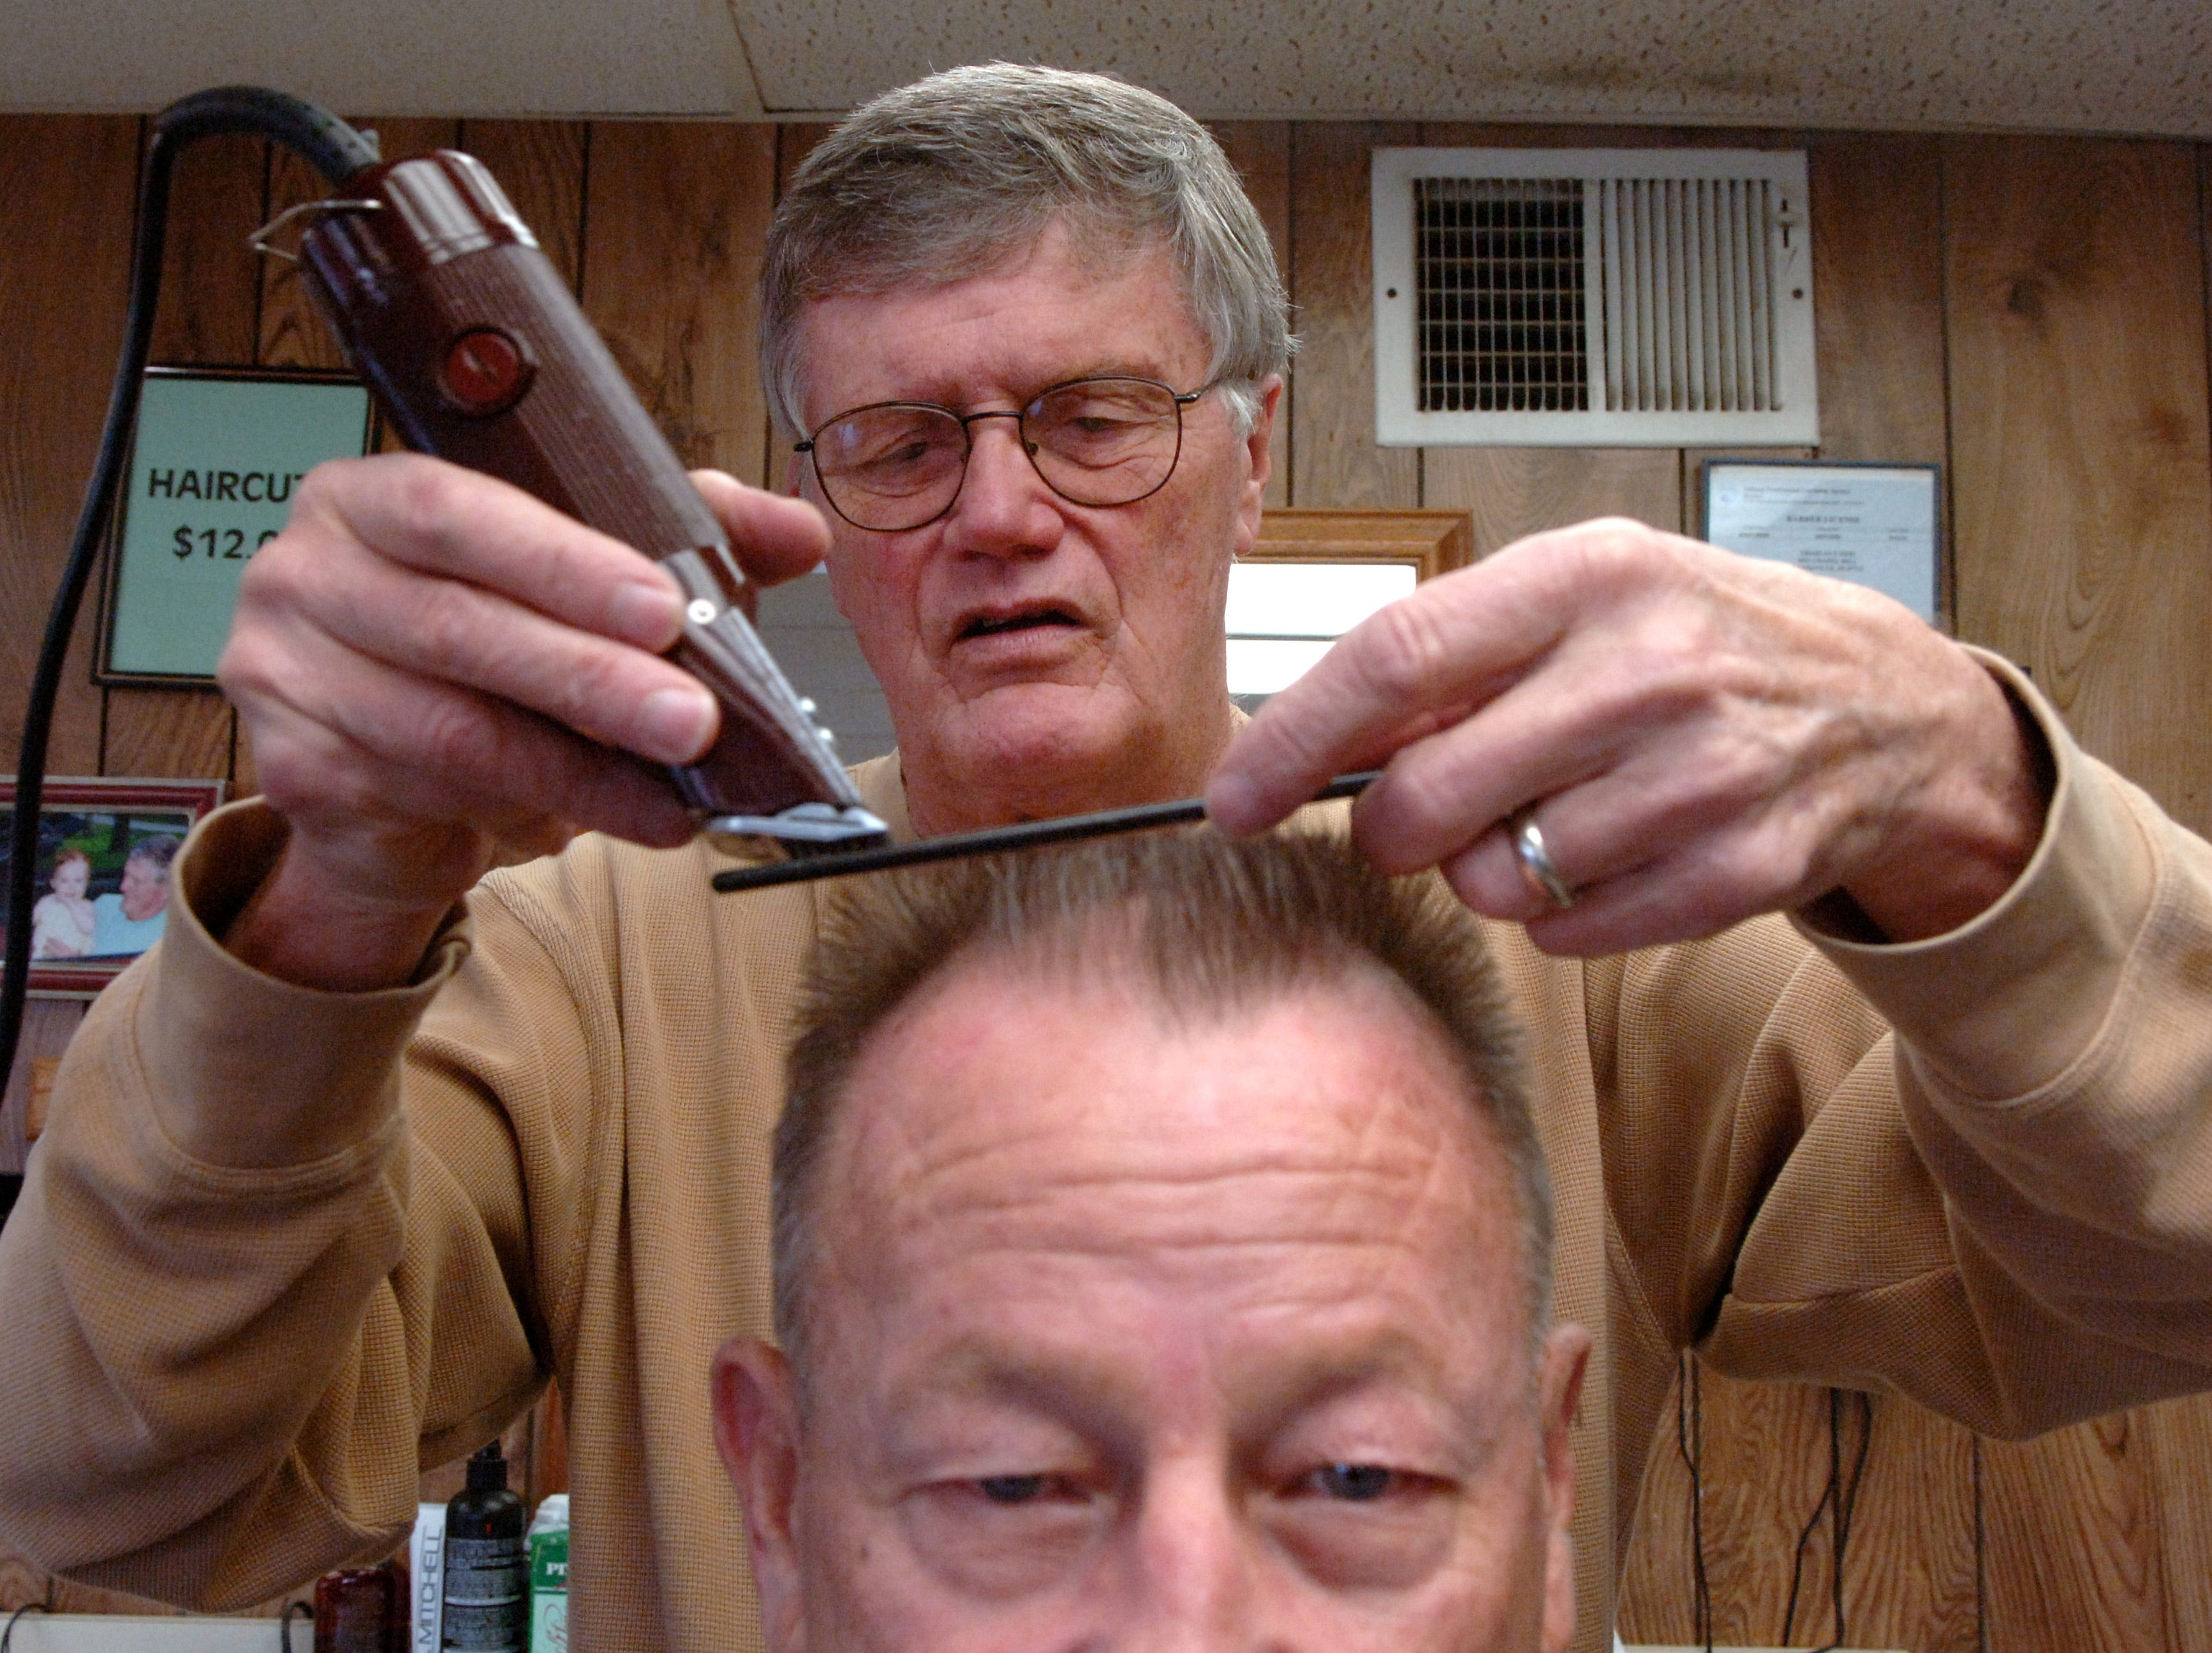 Eddie Geis, shown here in a 2007 photograph, died on Thursday at age 77. In this photo, he was cutting Bud Gatewood's hair. Geis had been Gatewood's barber since Geis was an apprentice in 1961.